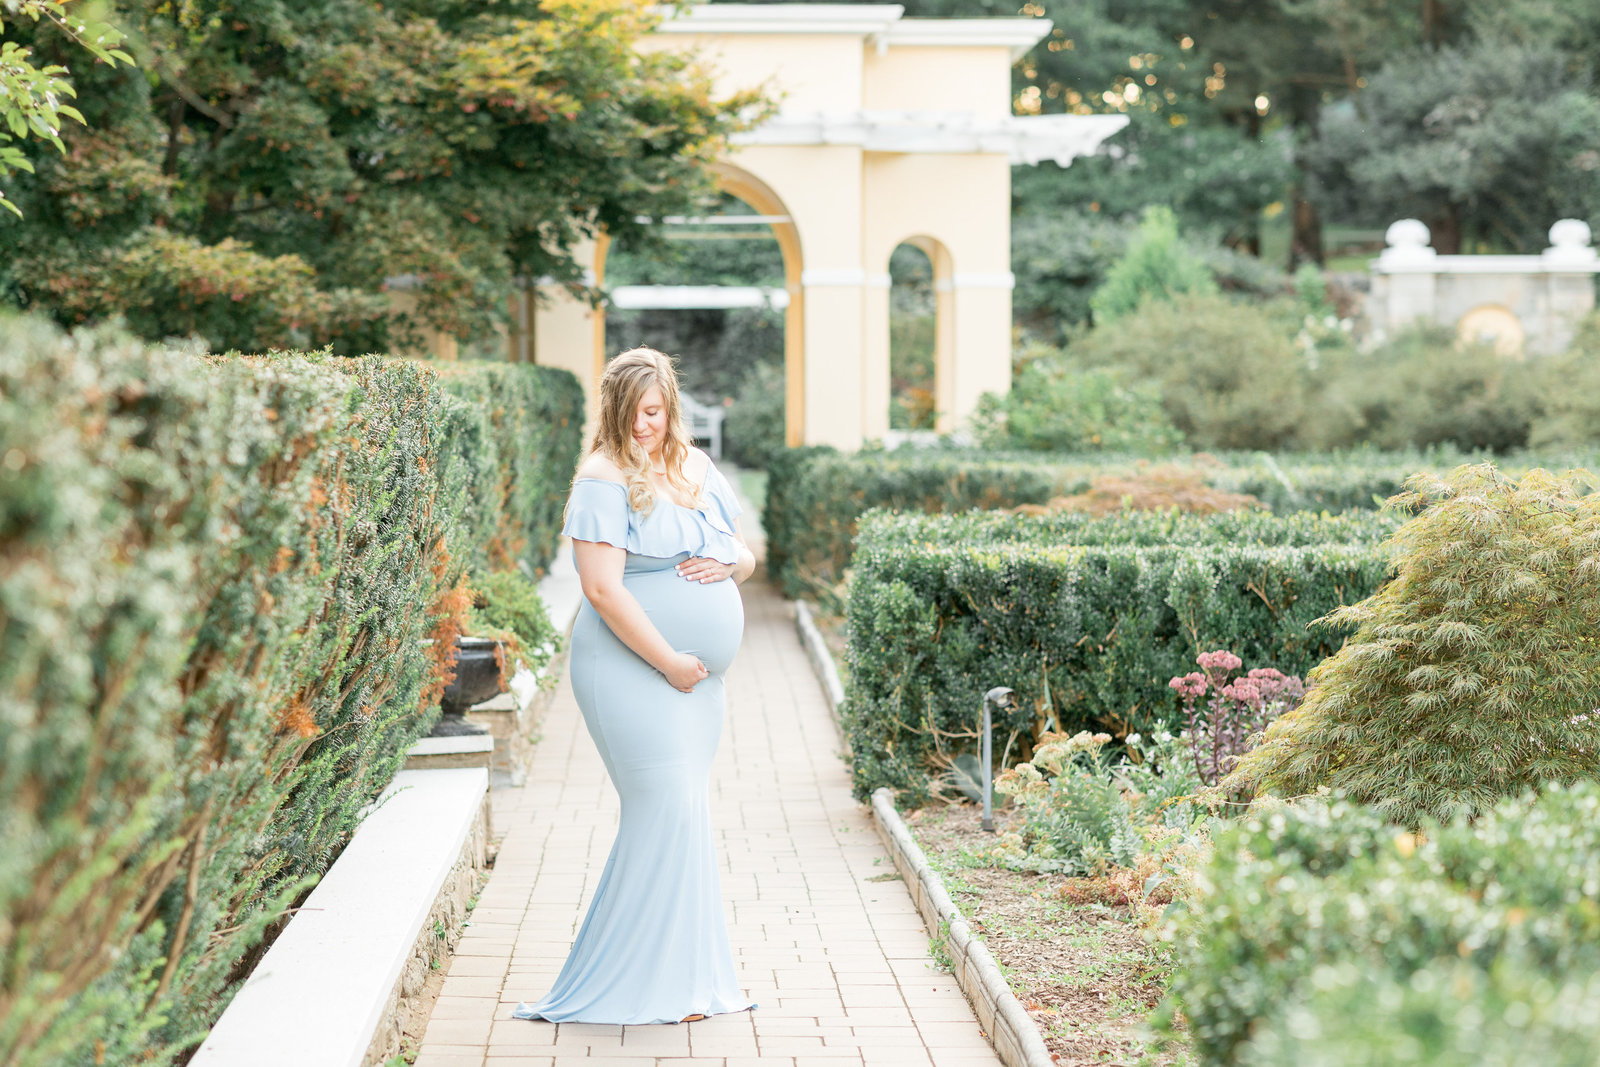 kimberly-ben-summer-maternity-photo-session-at-airlie-warrenton-va-013